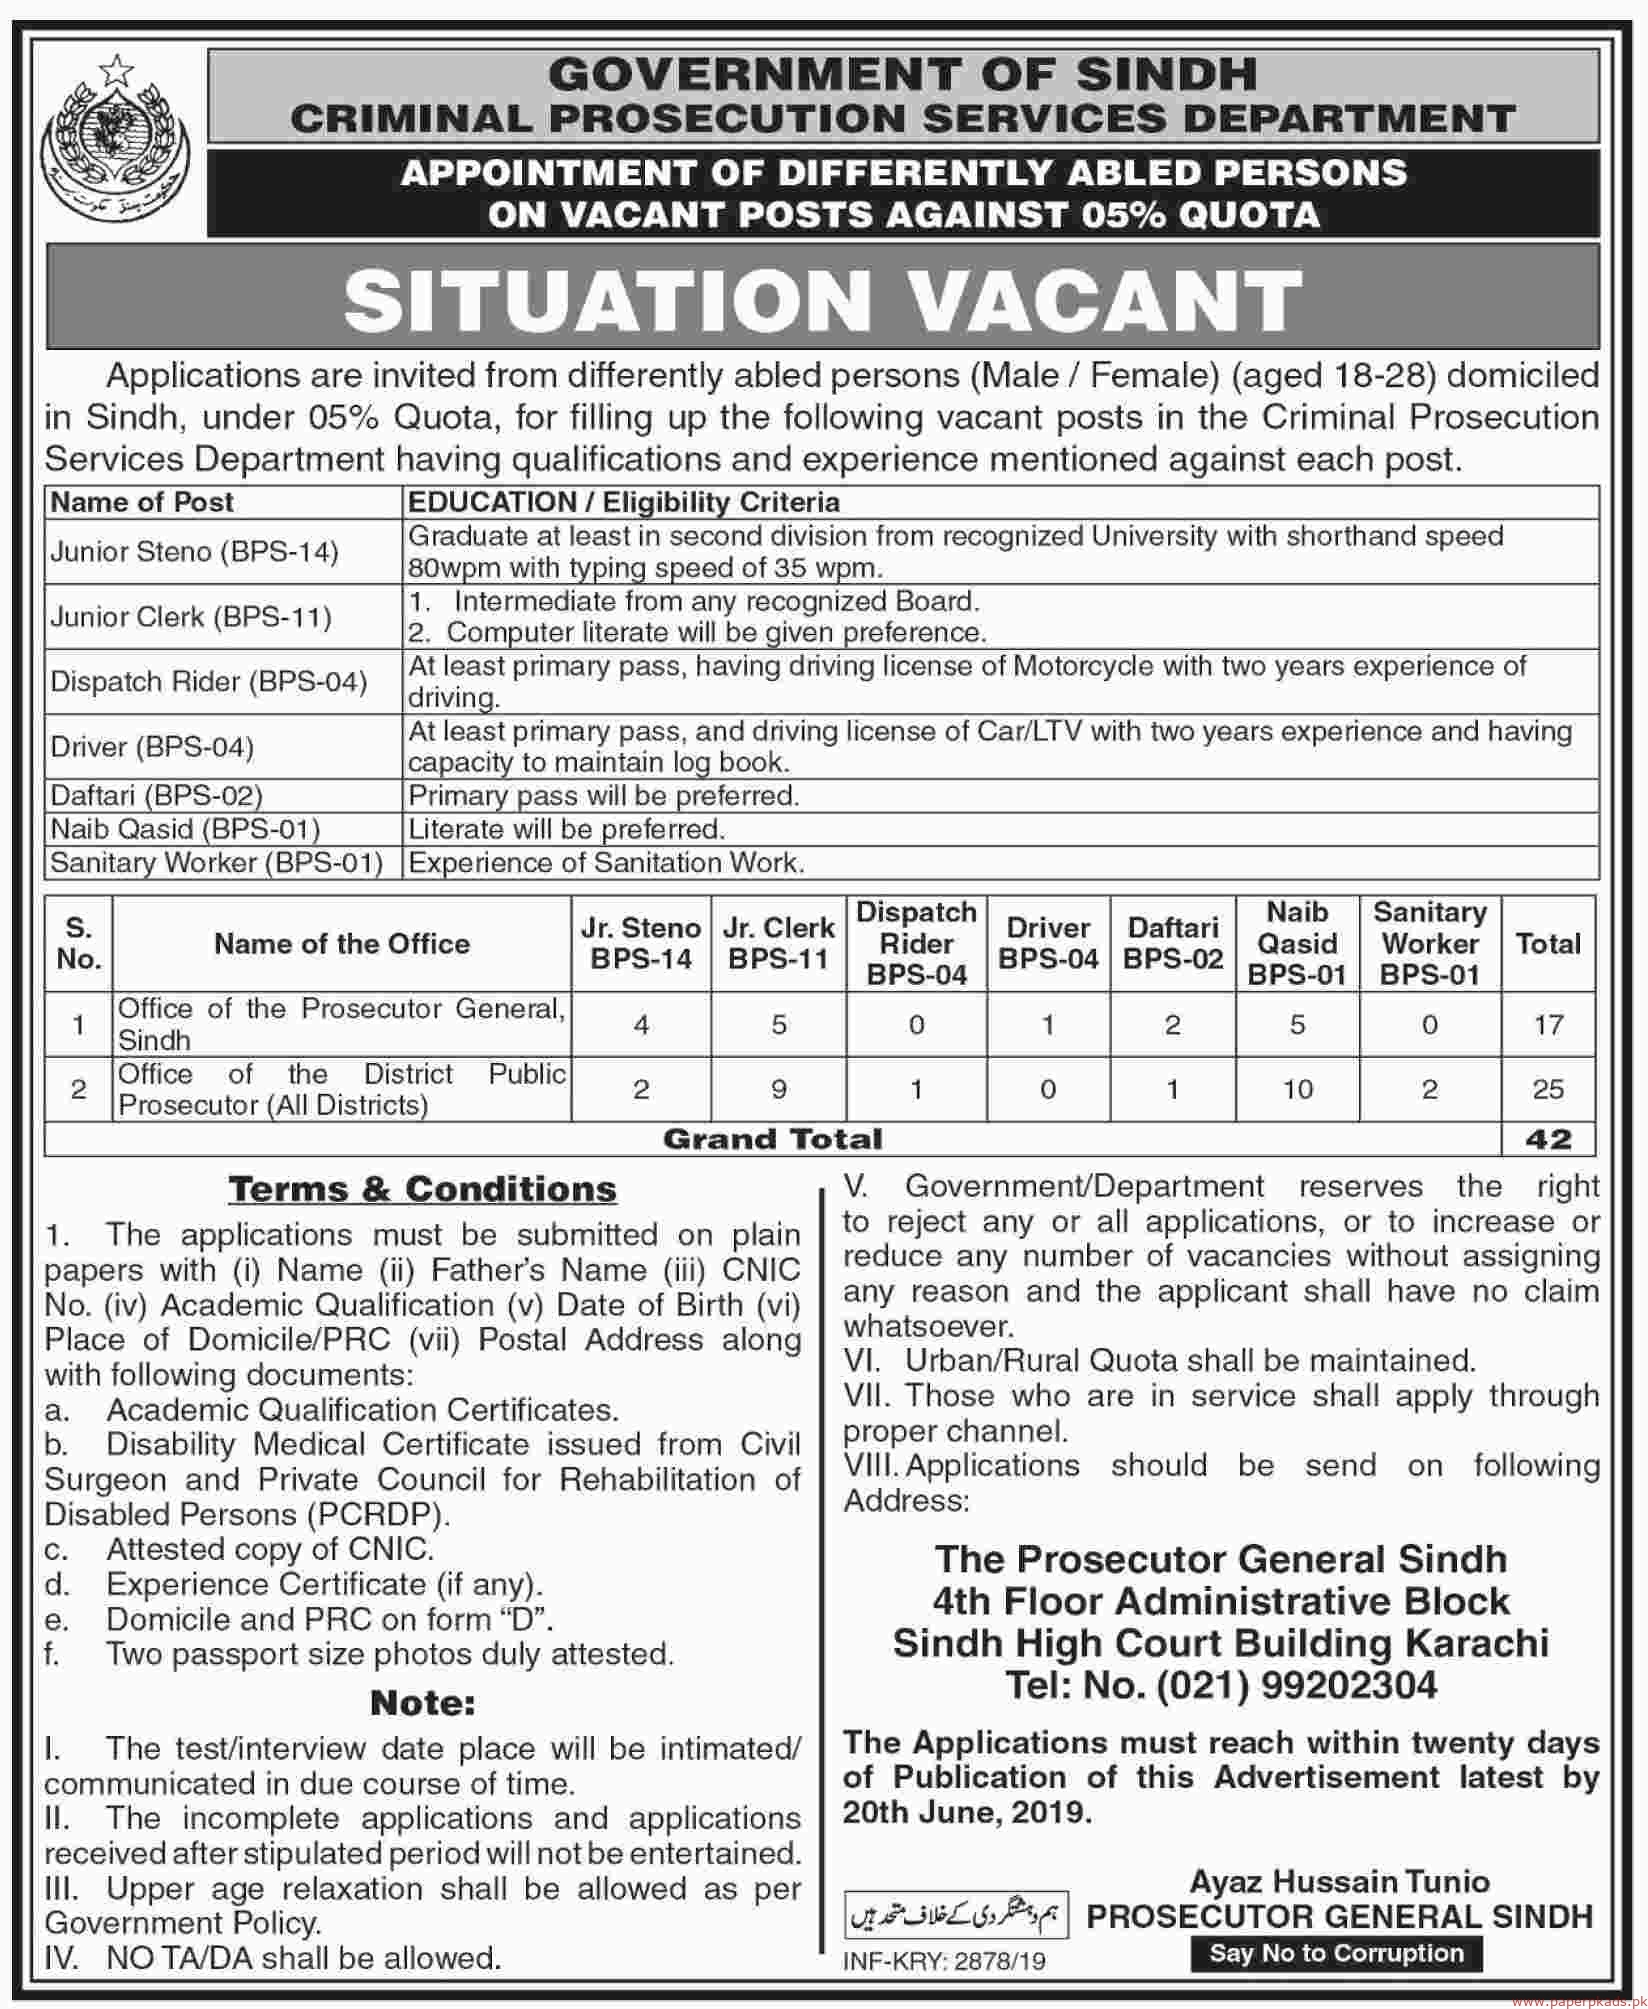 Government of Sindh - Criminal Prosecution Services Department Latest Jobs 2019